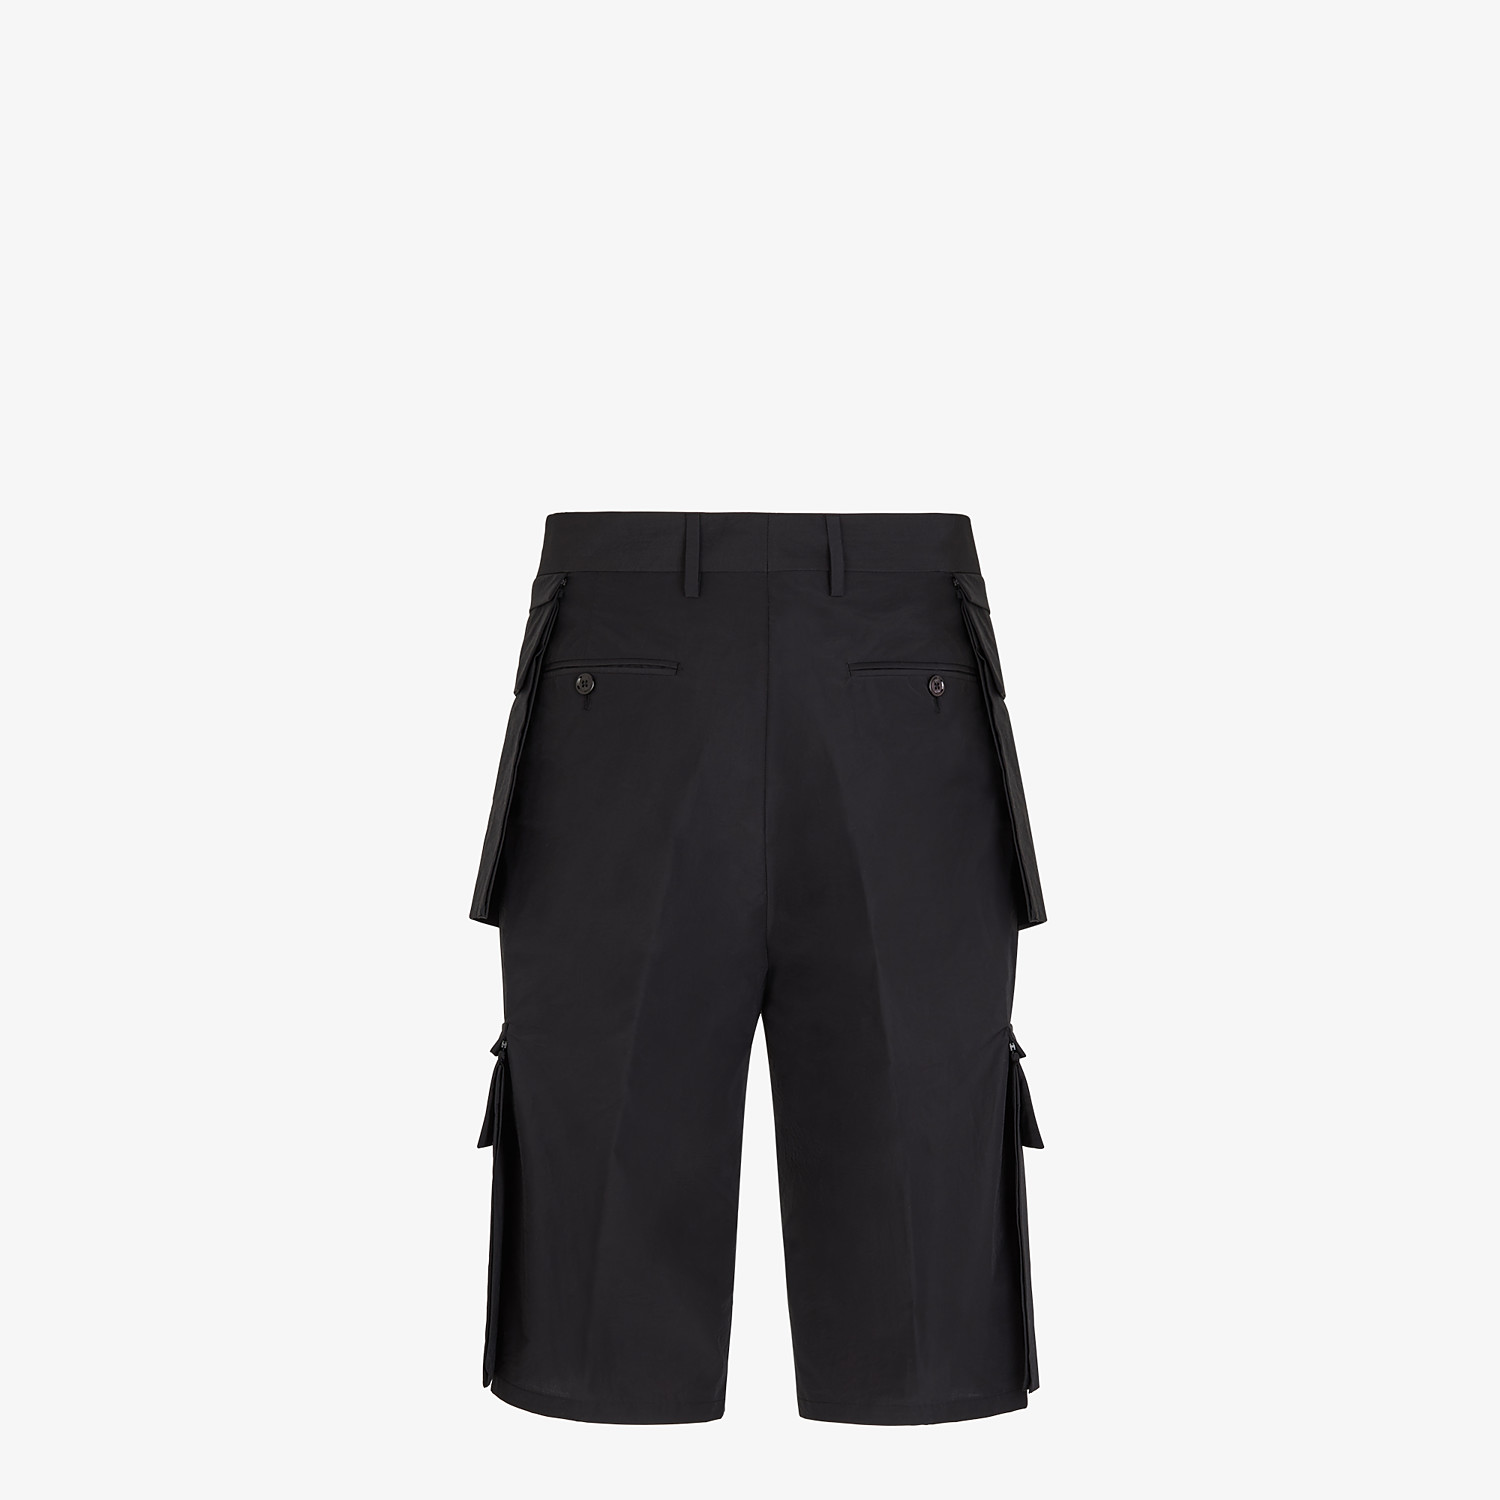 FENDI PANTS - Cotton and black nylon Bermudas - view 2 detail